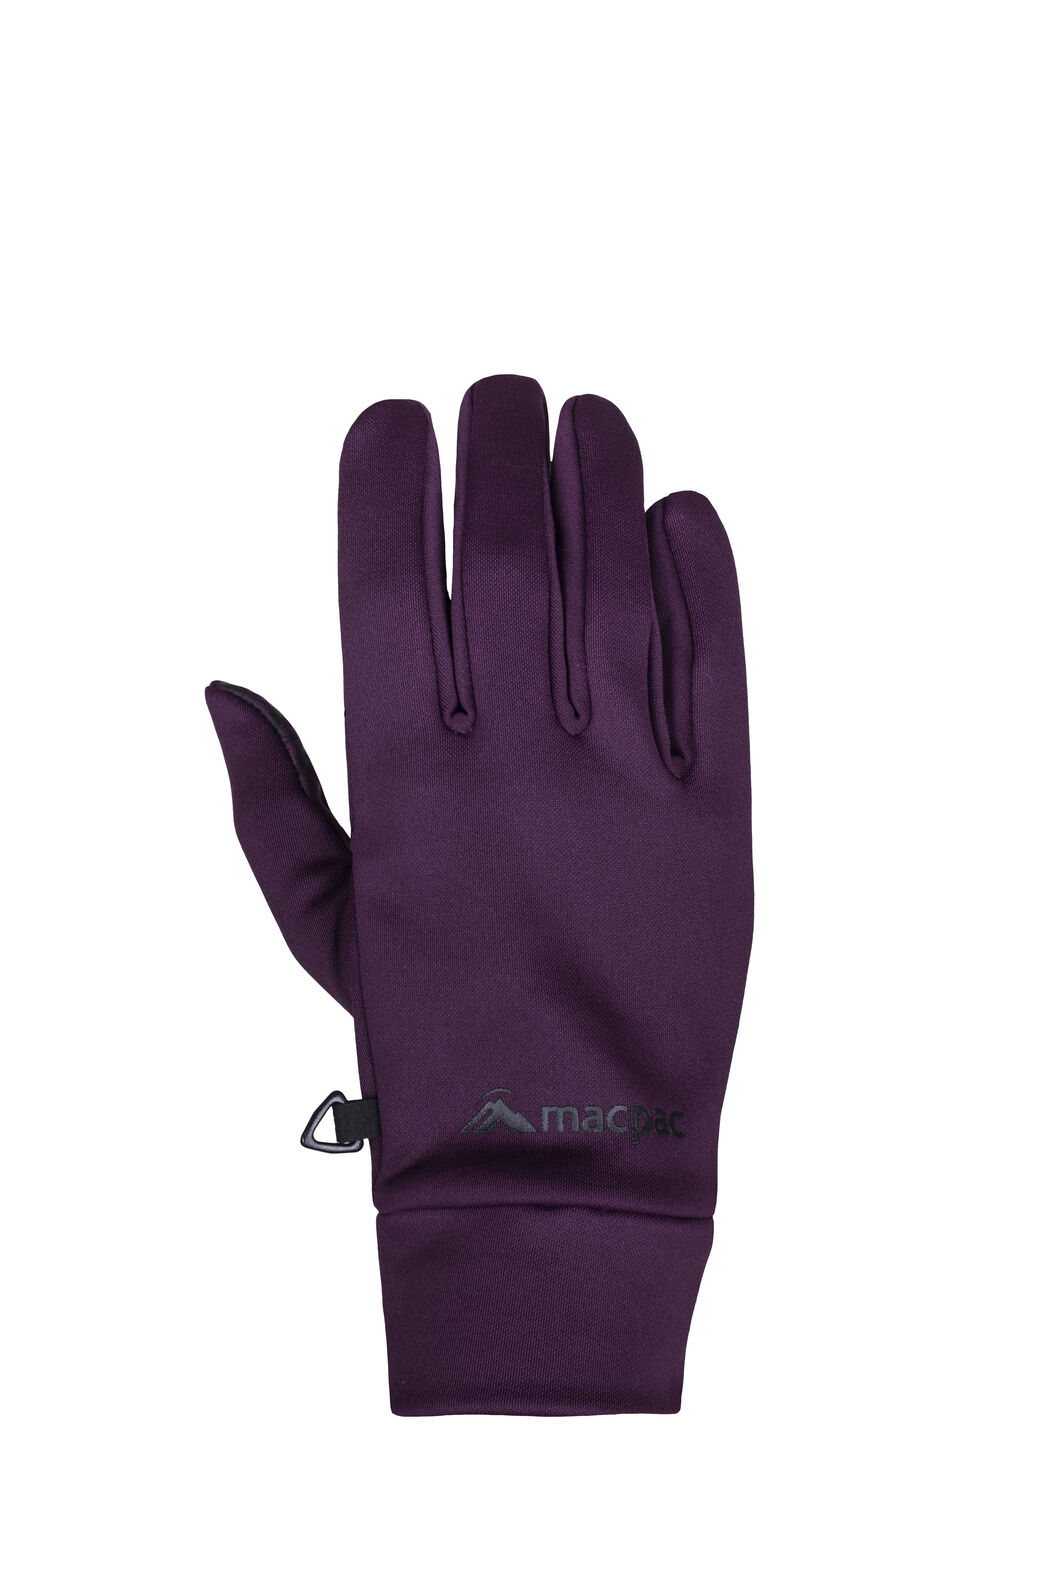 Macpac Stretch Gloves V2, Potent Purple, hi-res